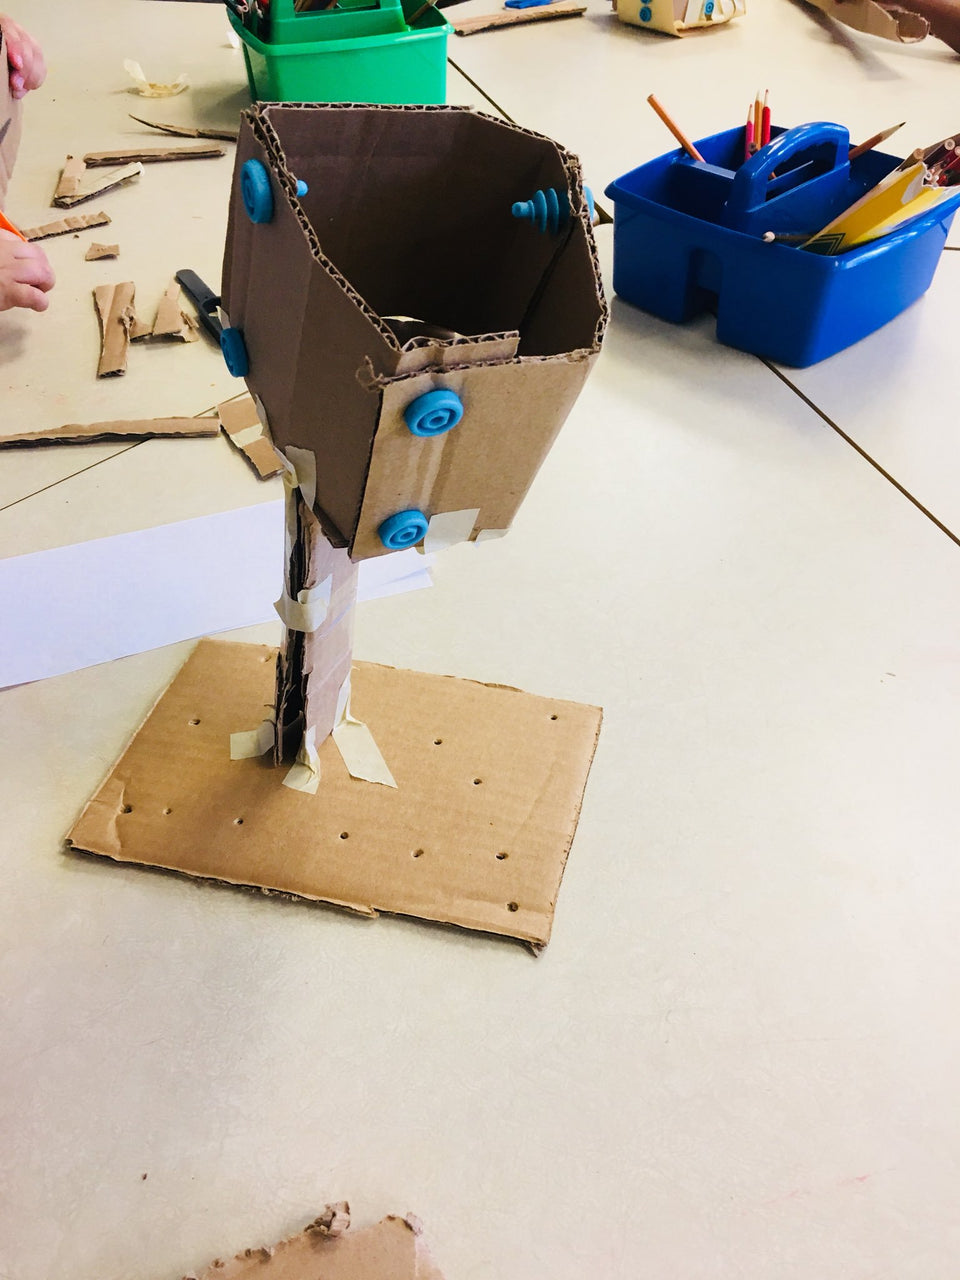 Cardboard bird nest grade school challenge made with Makedo construction system